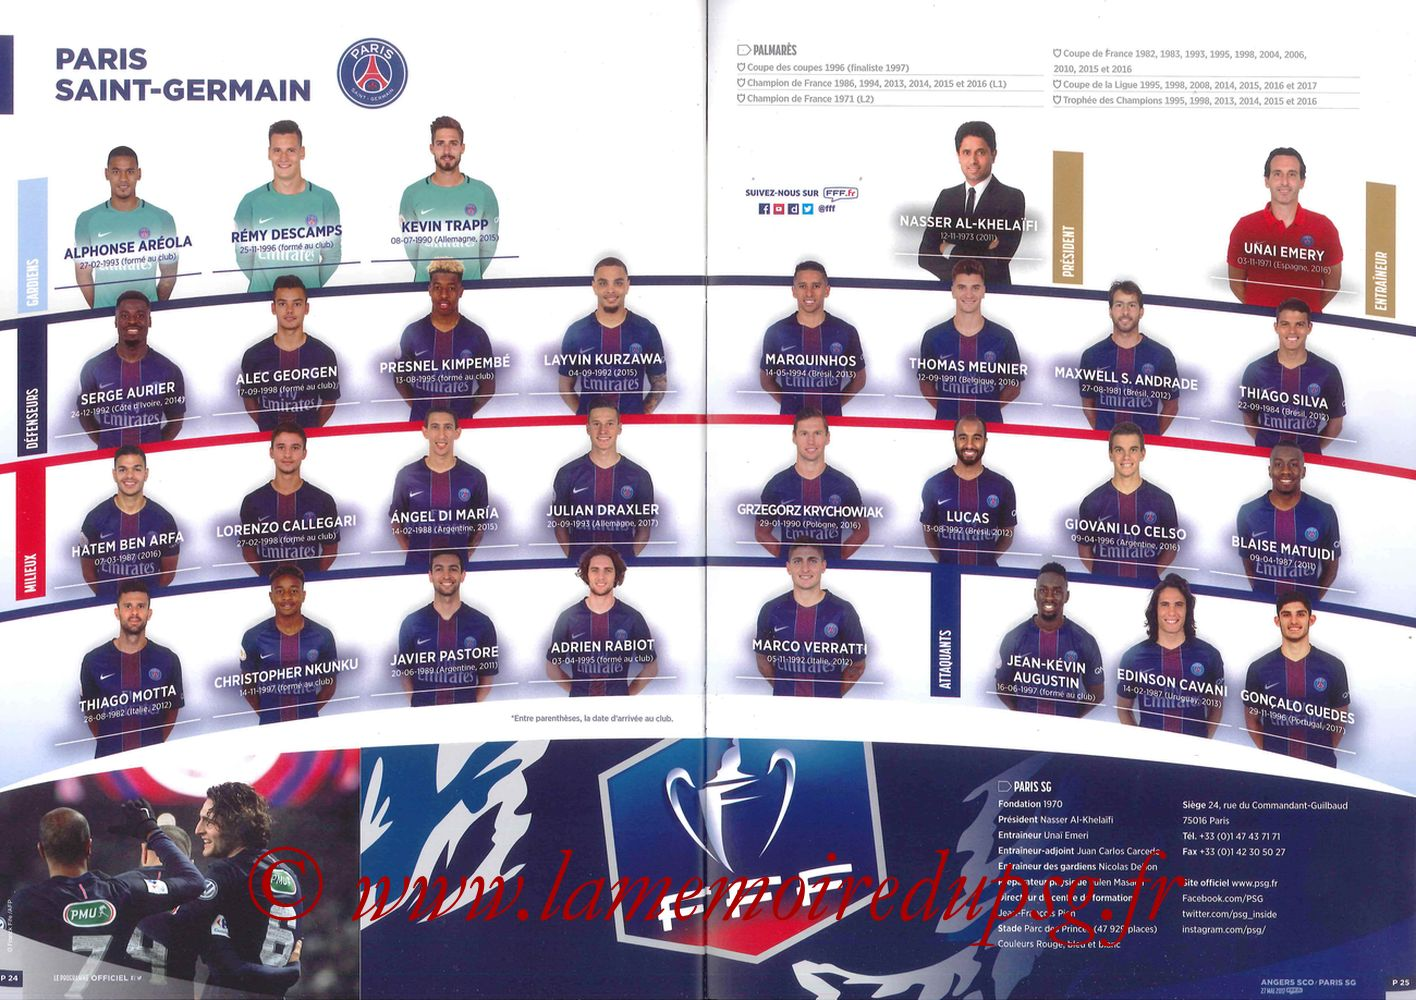 2017-05-27  Angers-PSG (Finale CF à Saint-Denis, Programme officiel) - Pages 24 et 25